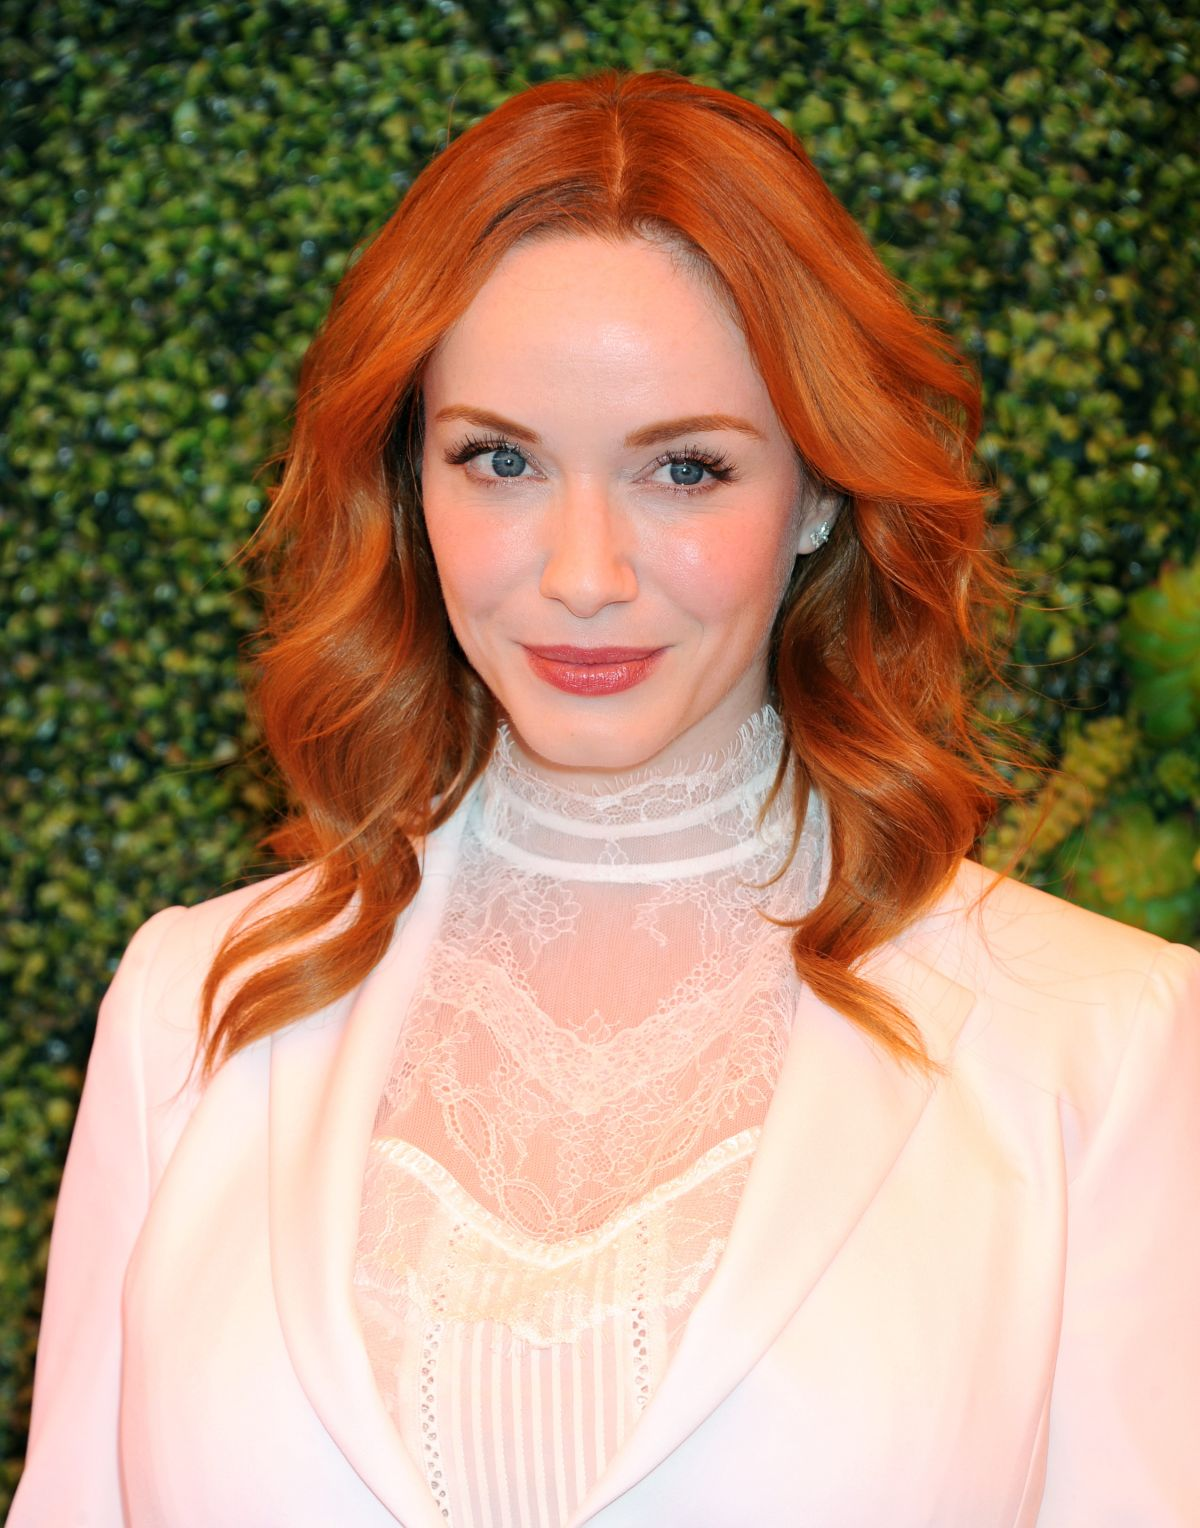 CHRISTINA HENDRICKS at Veuve Clicquot Polo Classic 2014 in Los Angeles